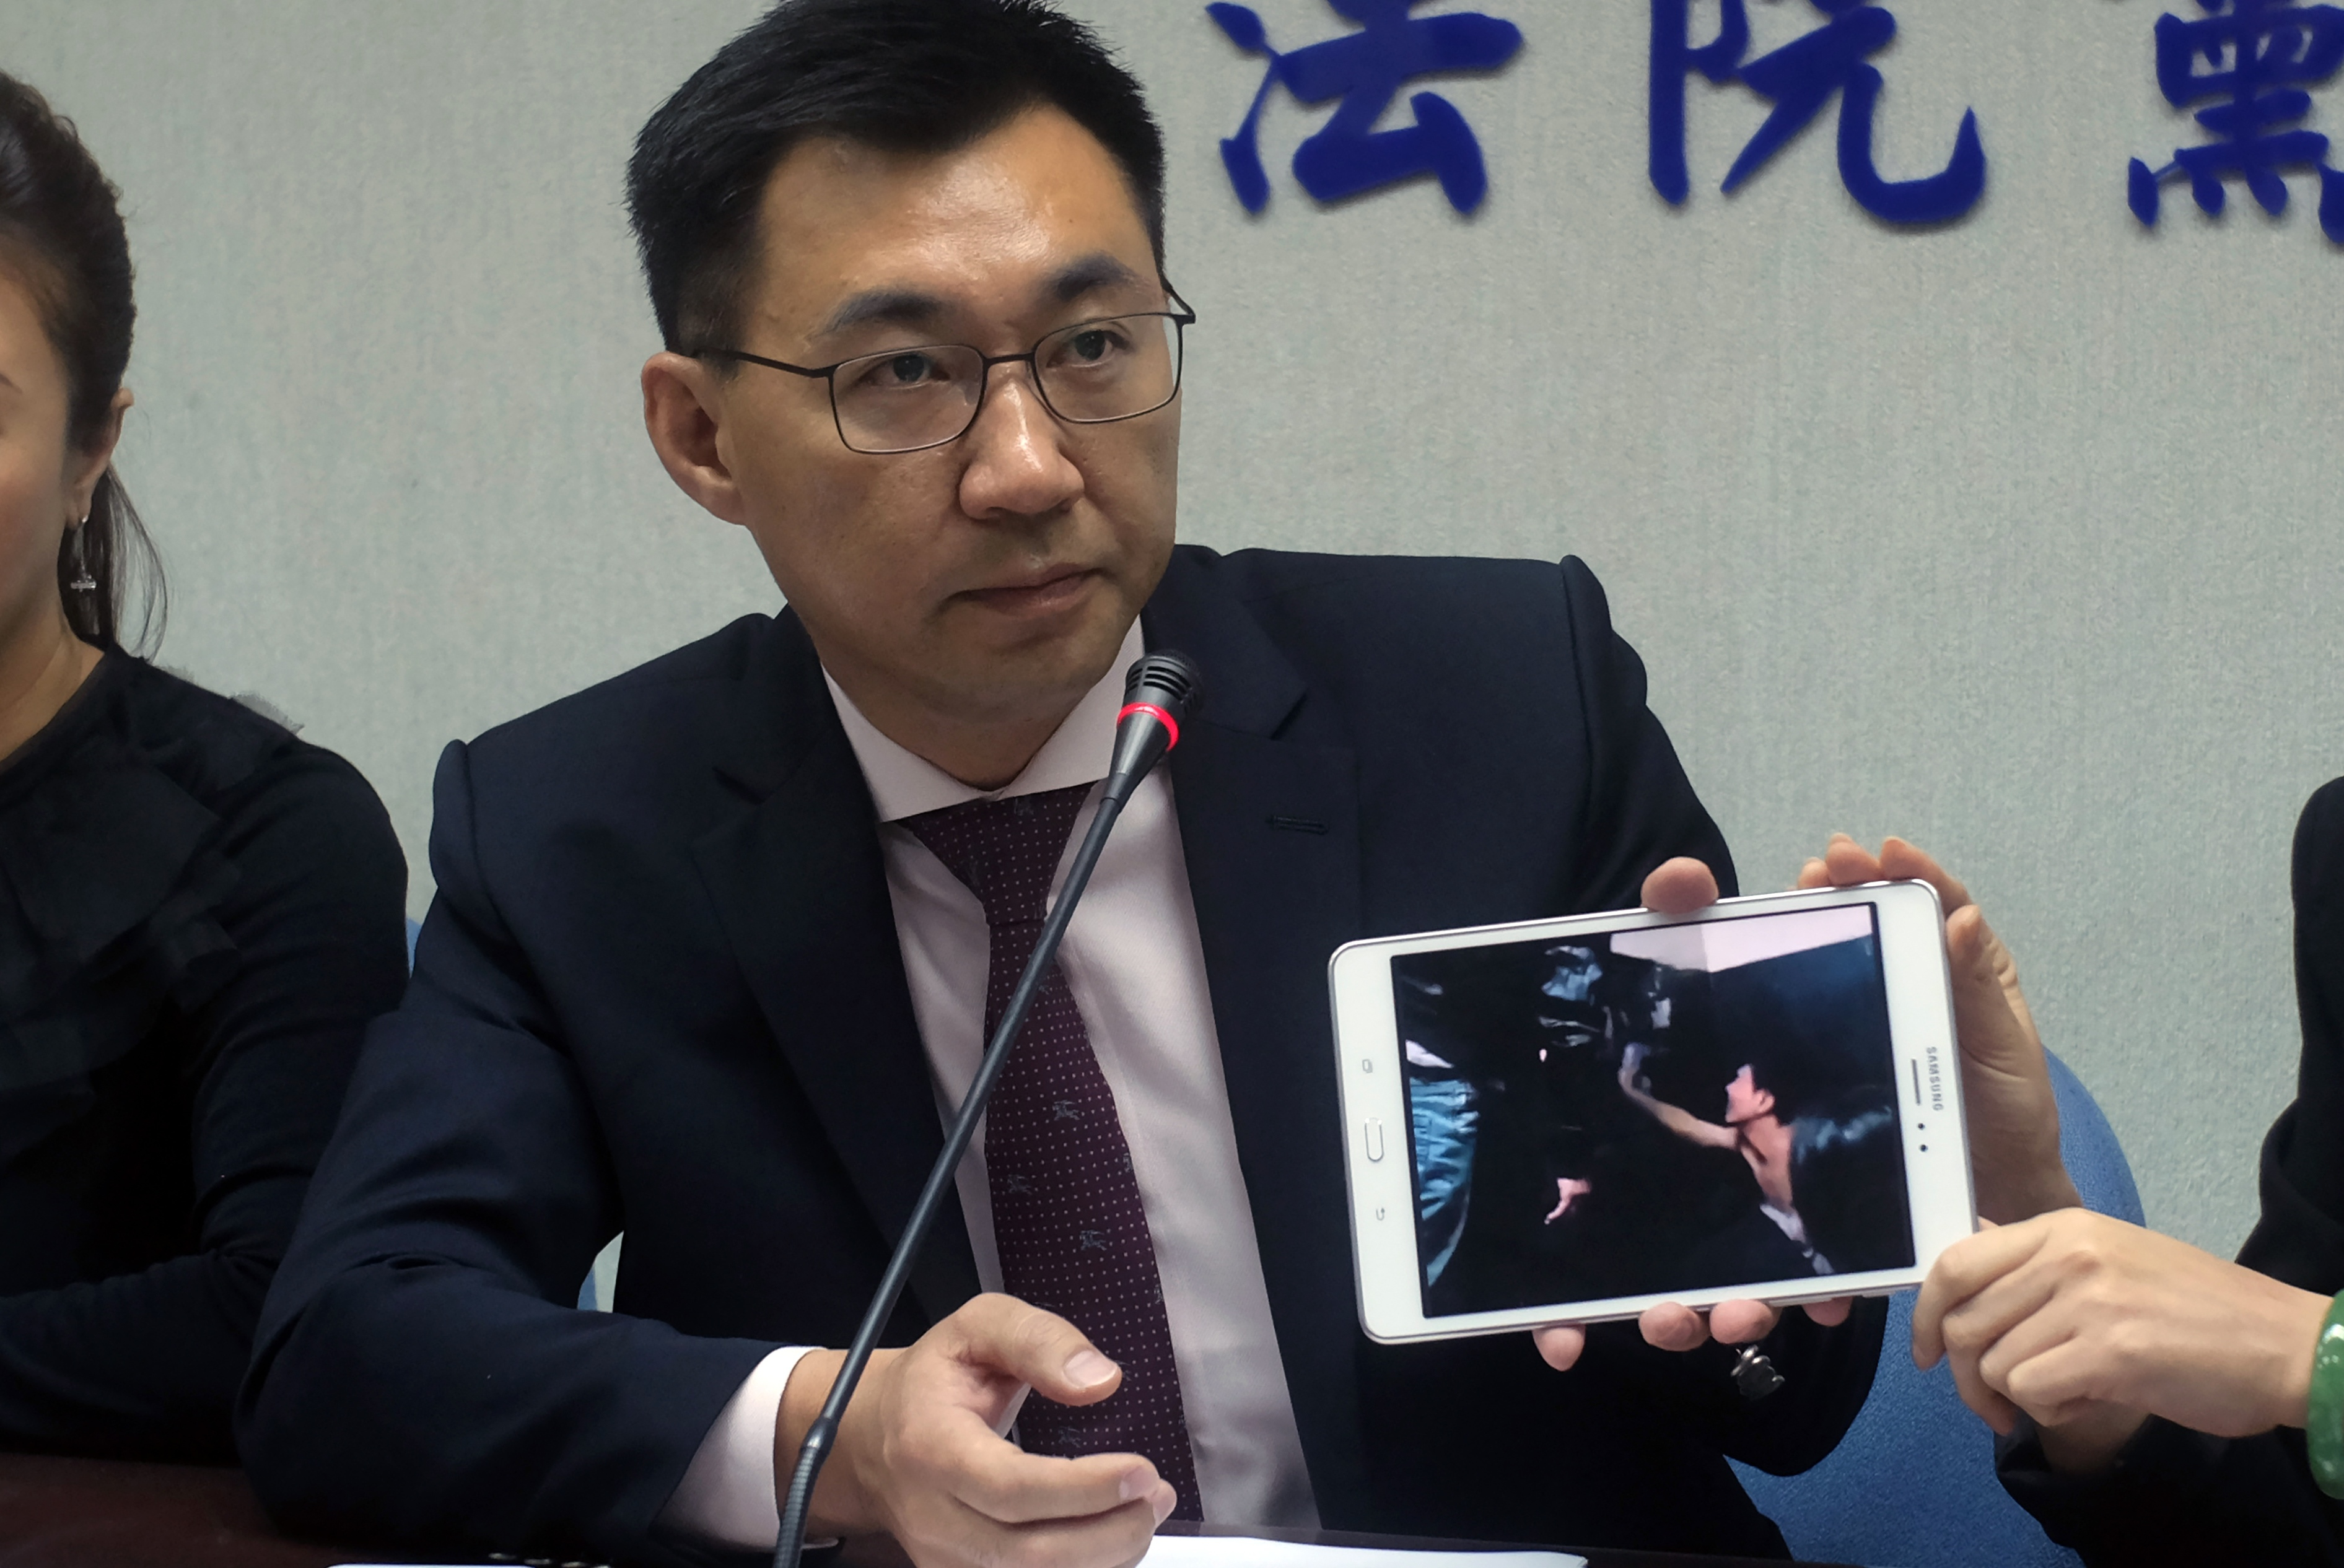 Johnny Chiang, a legislator from the Nationalist Party (Kuomintang), displays a video clip showing Taiwanese detained at a police station in Kenya, during a press conference in Taipei on April 12, 2016